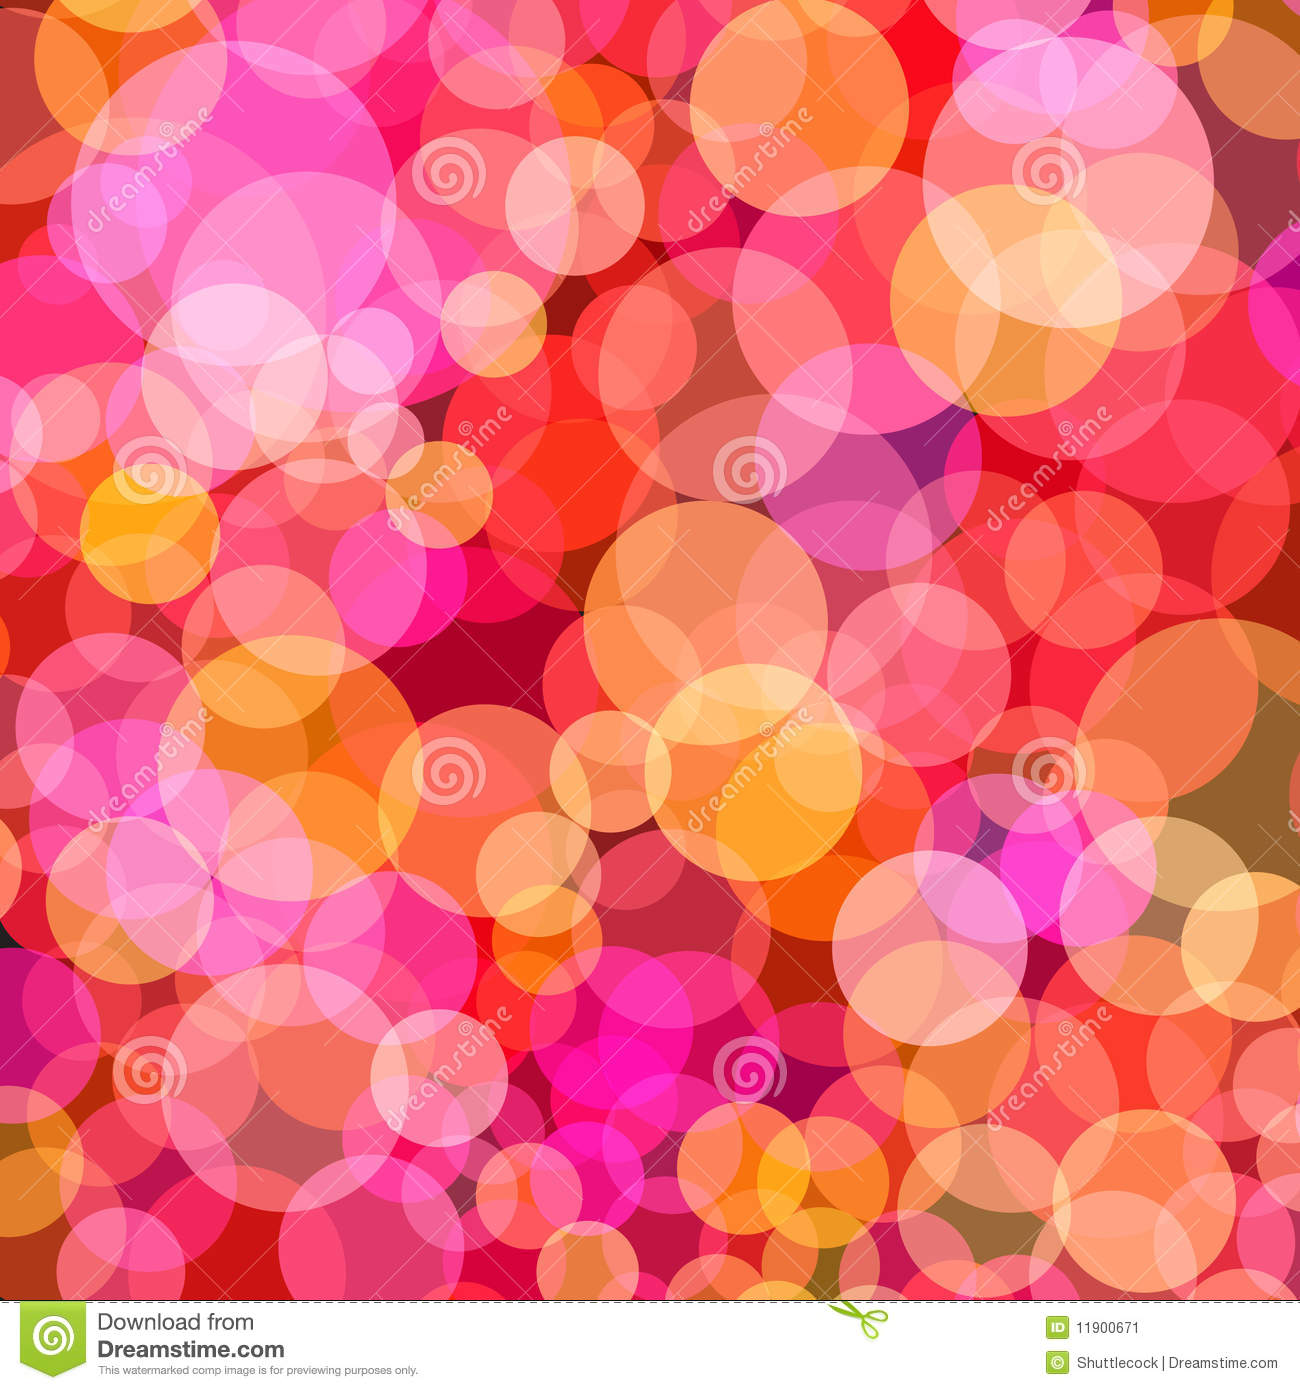 Diy Decorating Ideas For Valentine S Day as well  also  additionally  moreover Colorful X Fractals Hd. on colorful dots